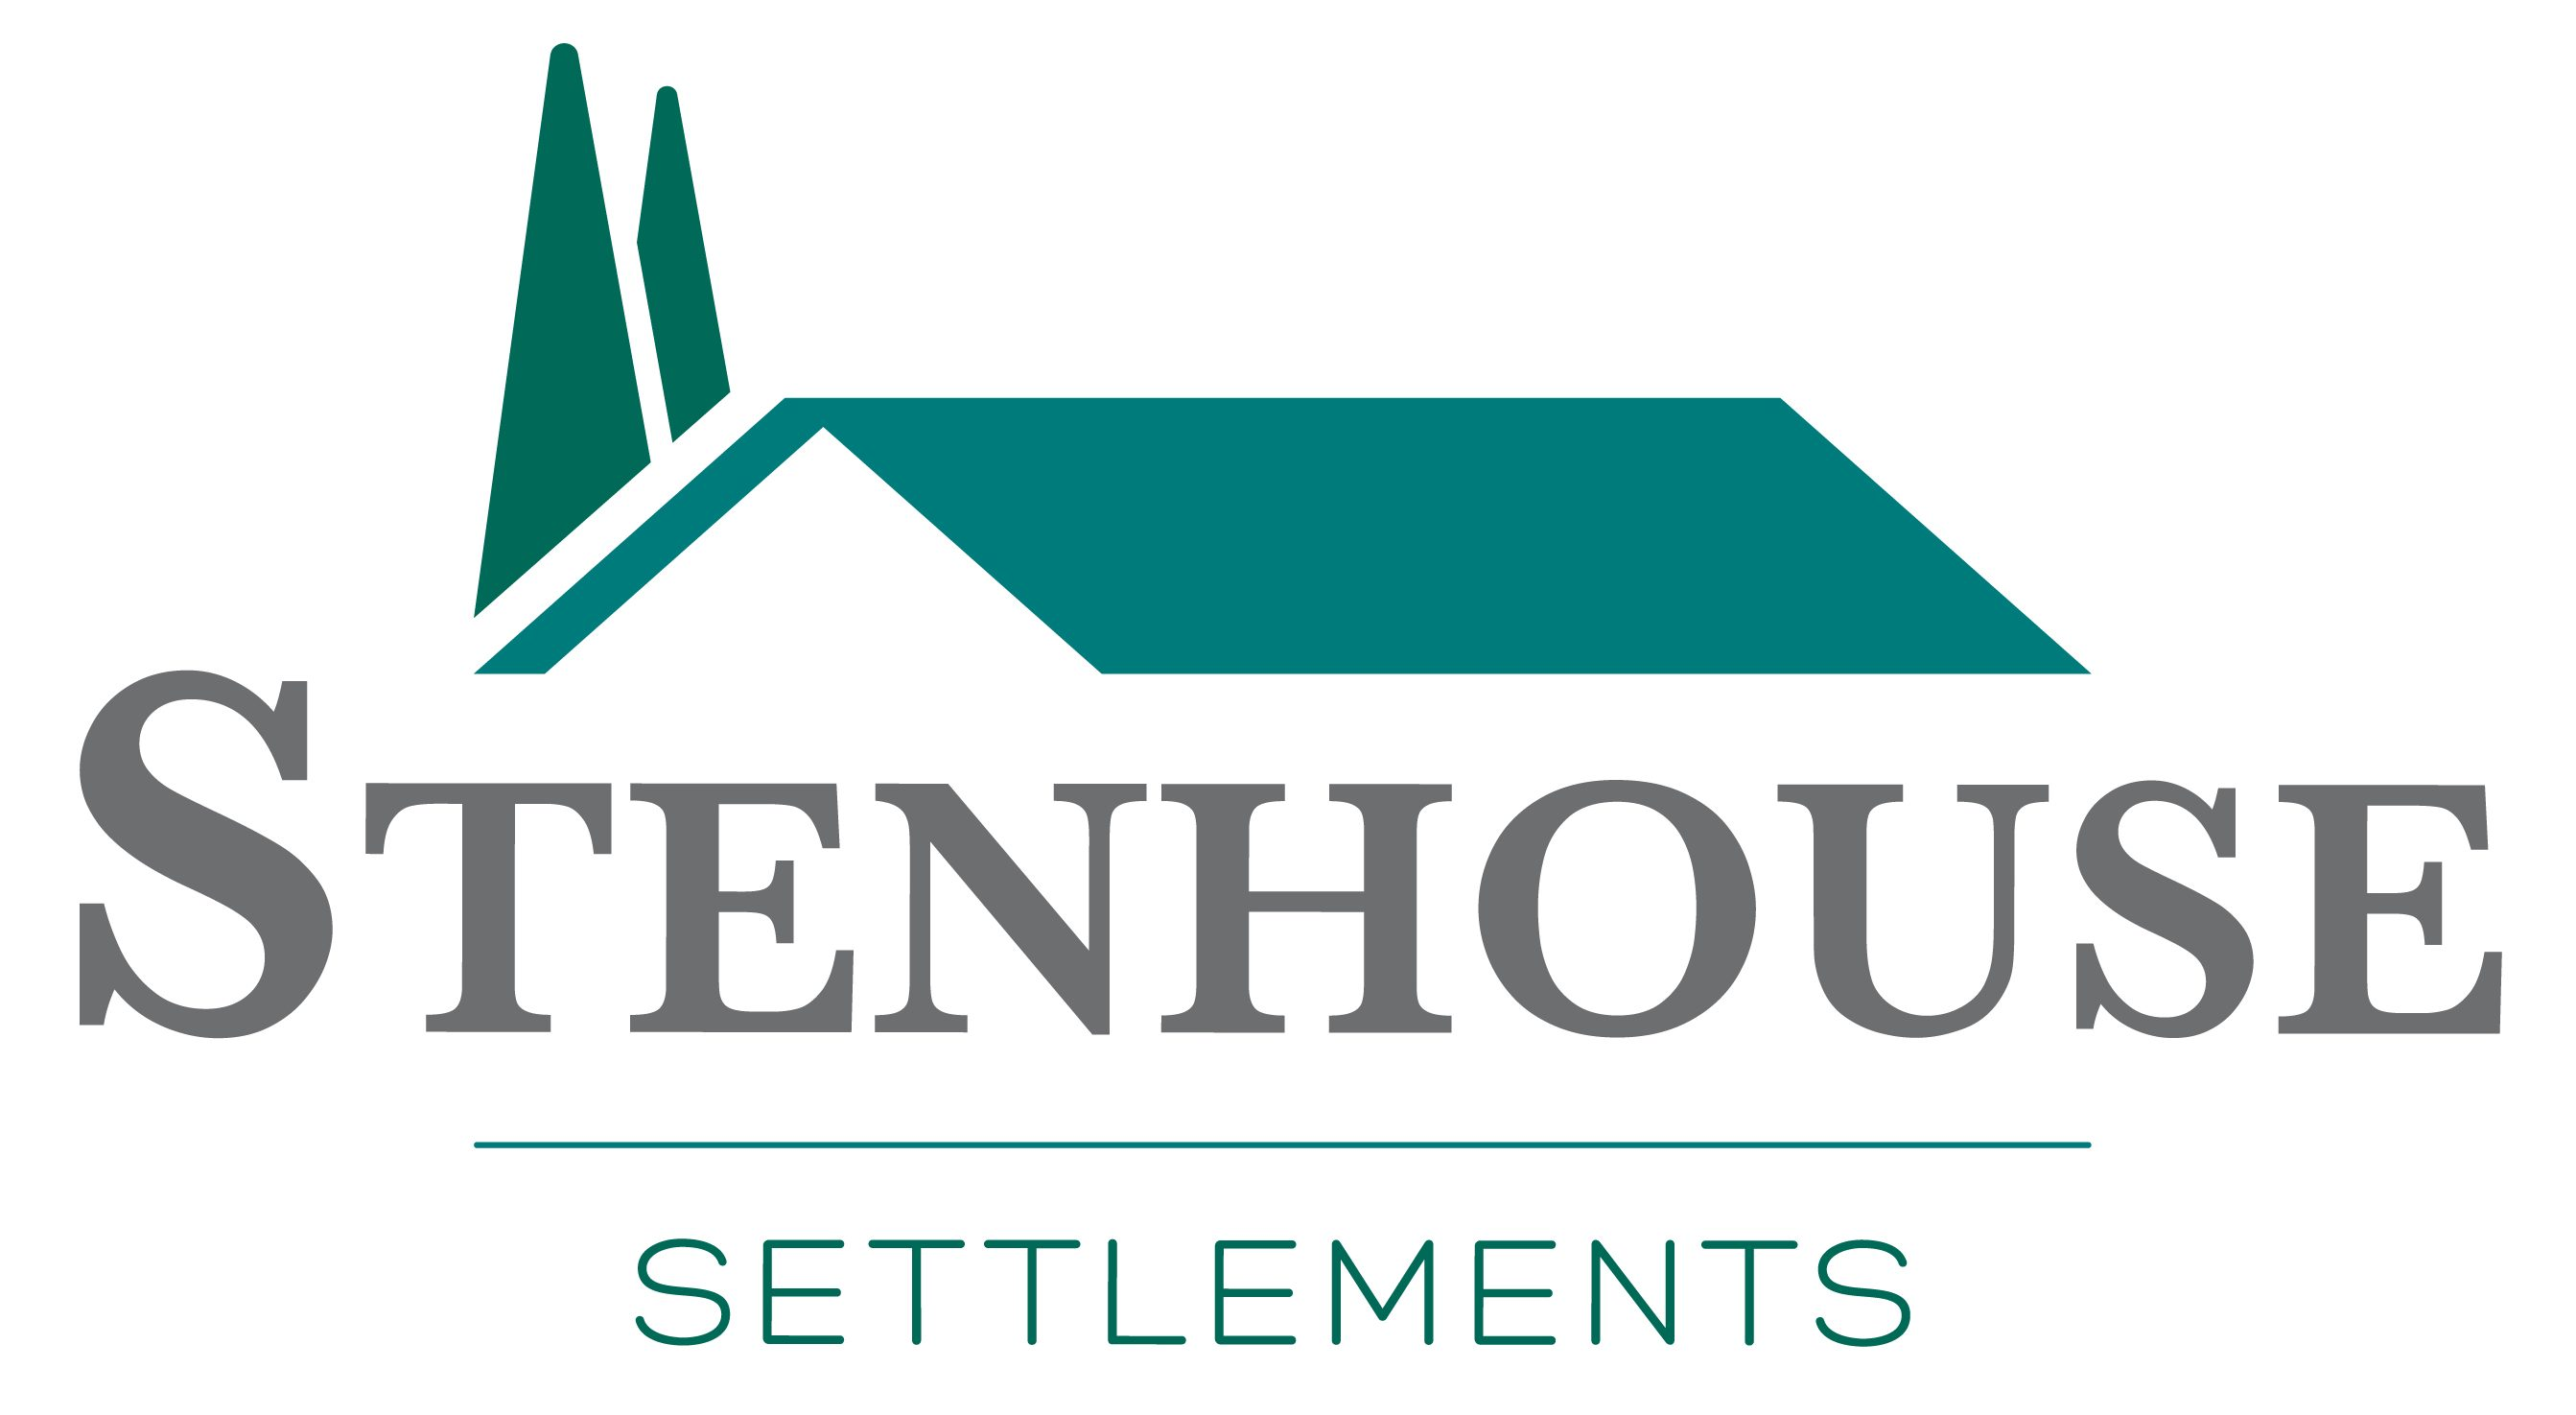 Stenhouse Settlement Services